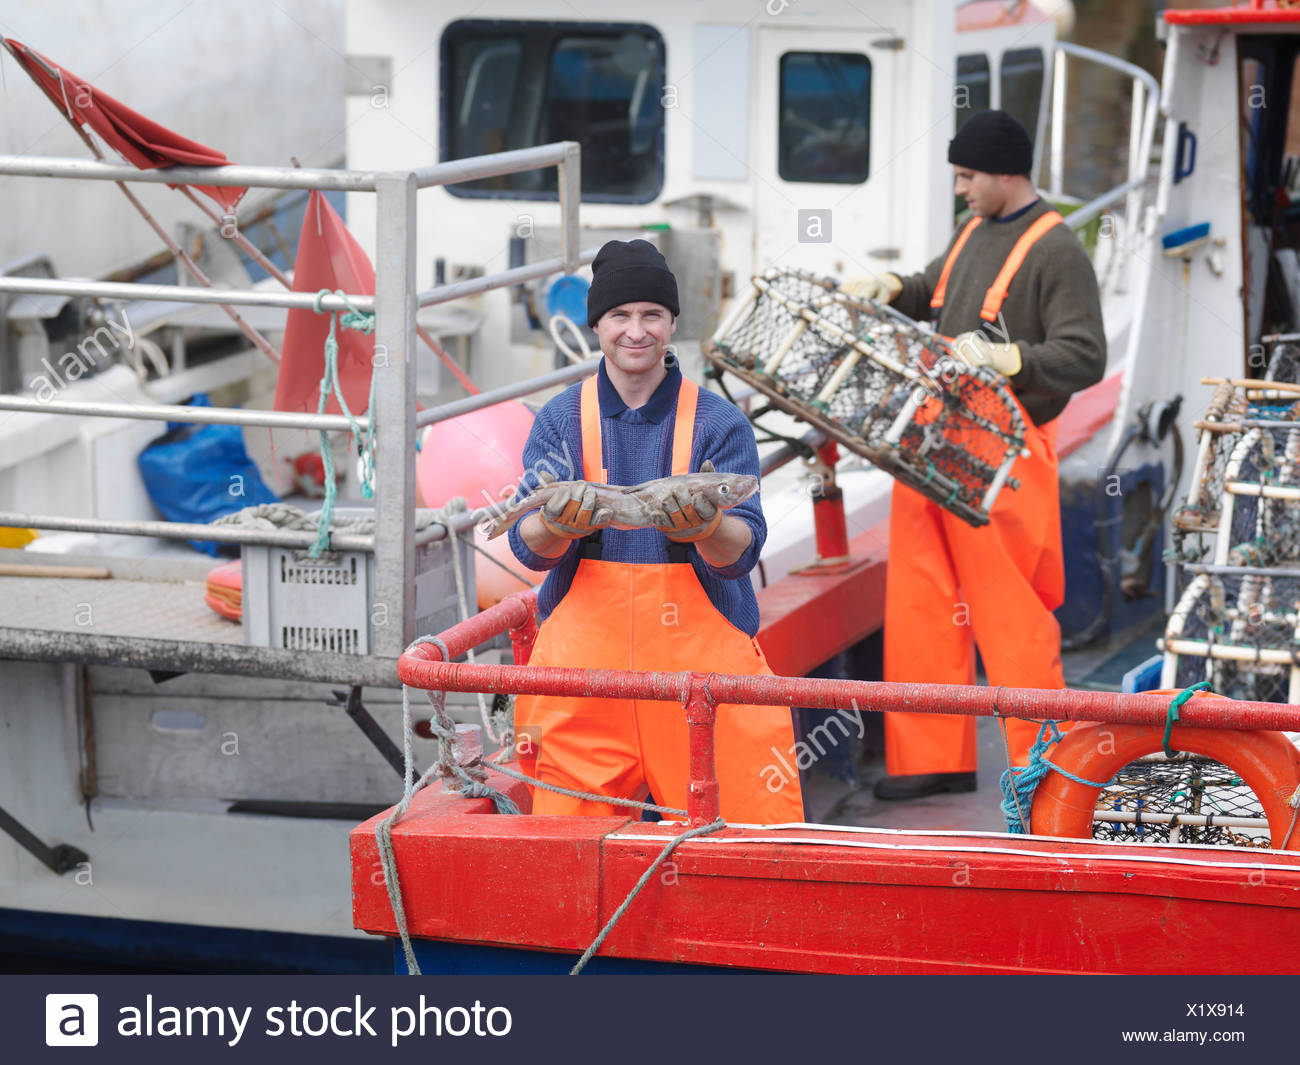 Fisherman holds fish on boat in harbour - Stock Image